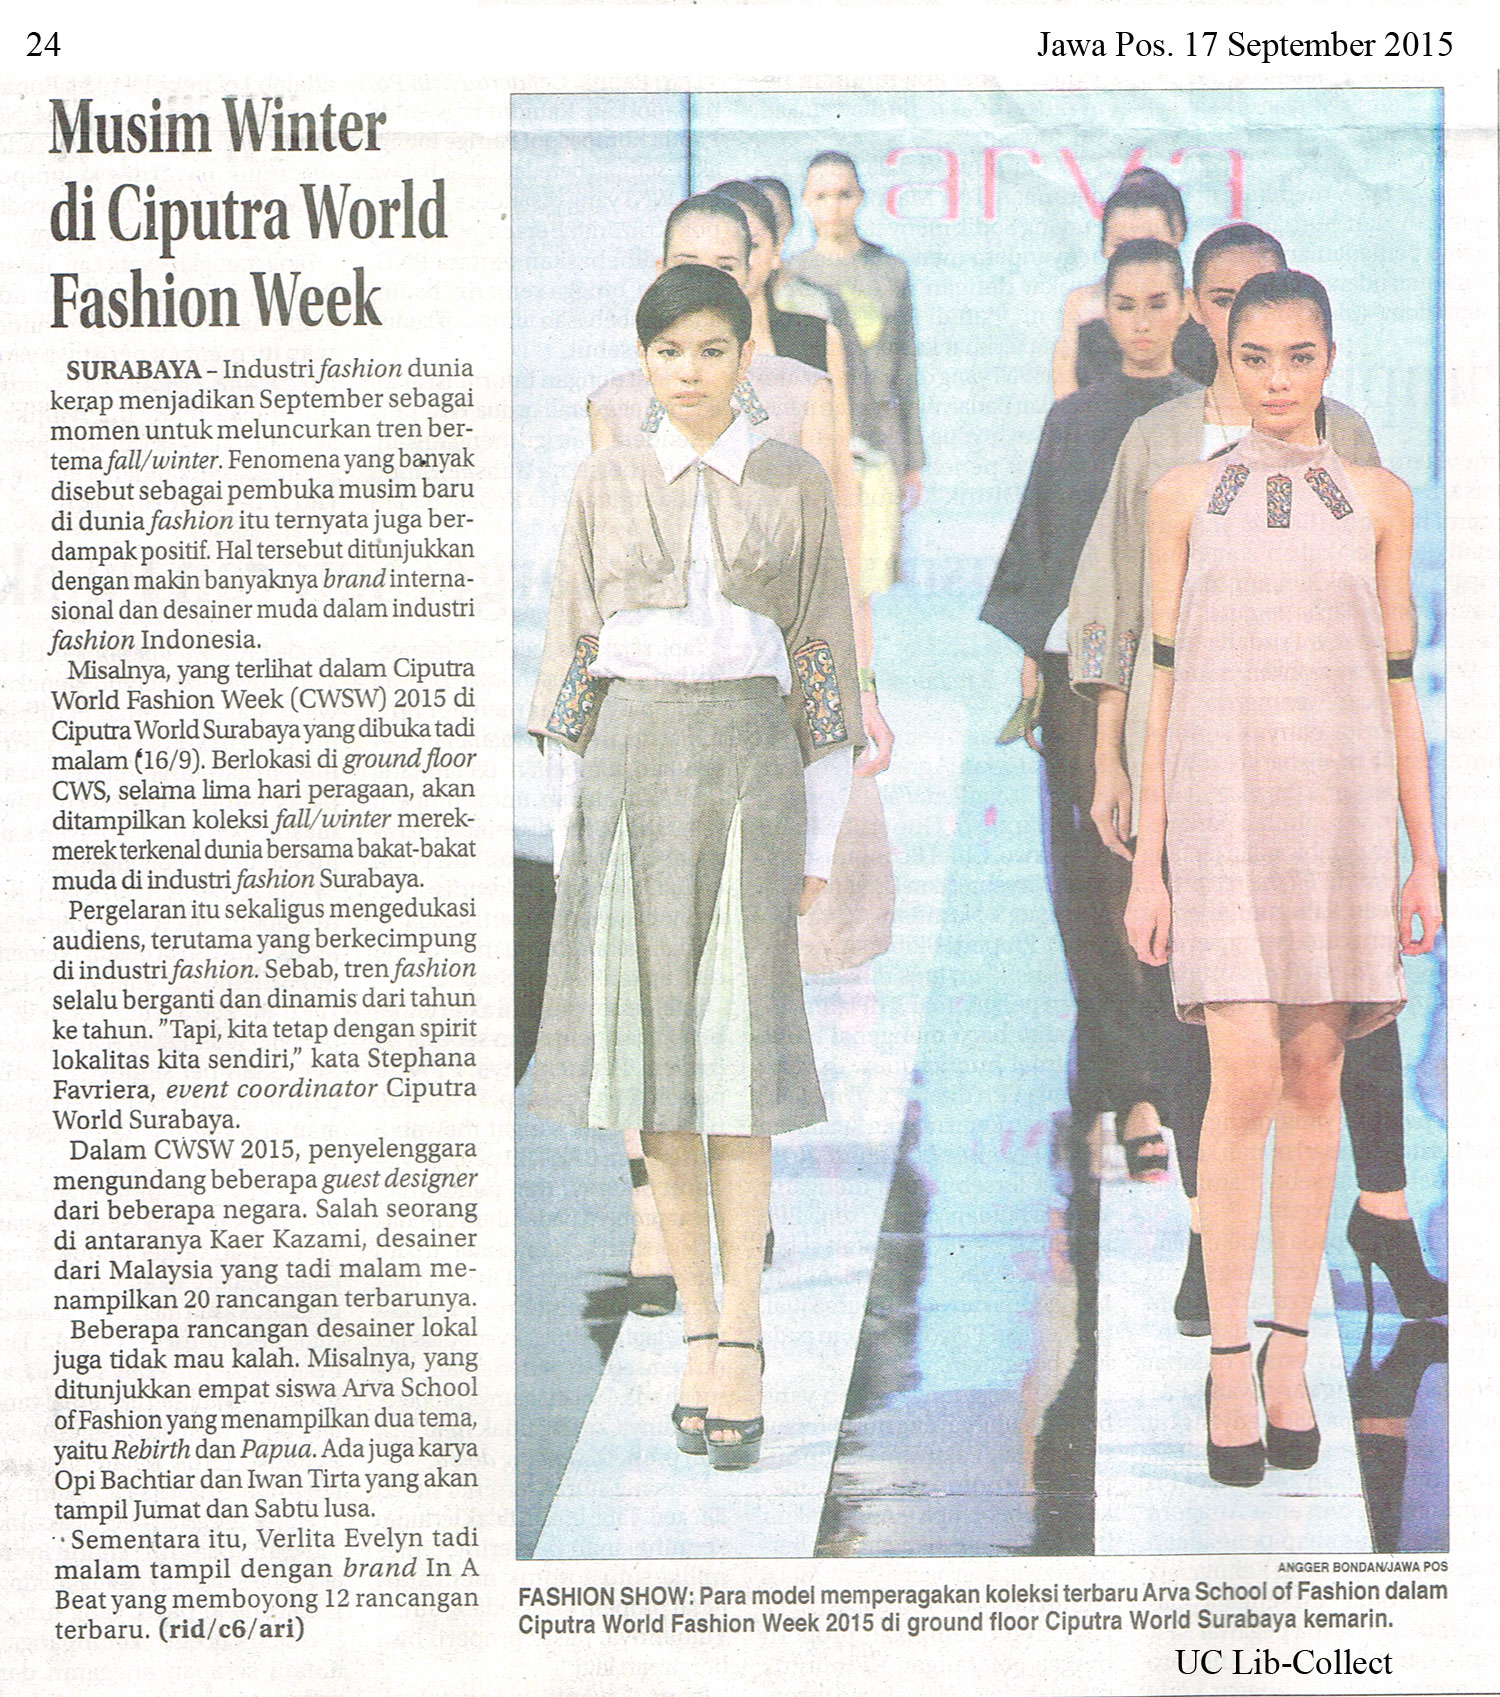 Musim Winter di Ciputra World Fashion Week. Jawa Pos.17 September 2015.Hal.24